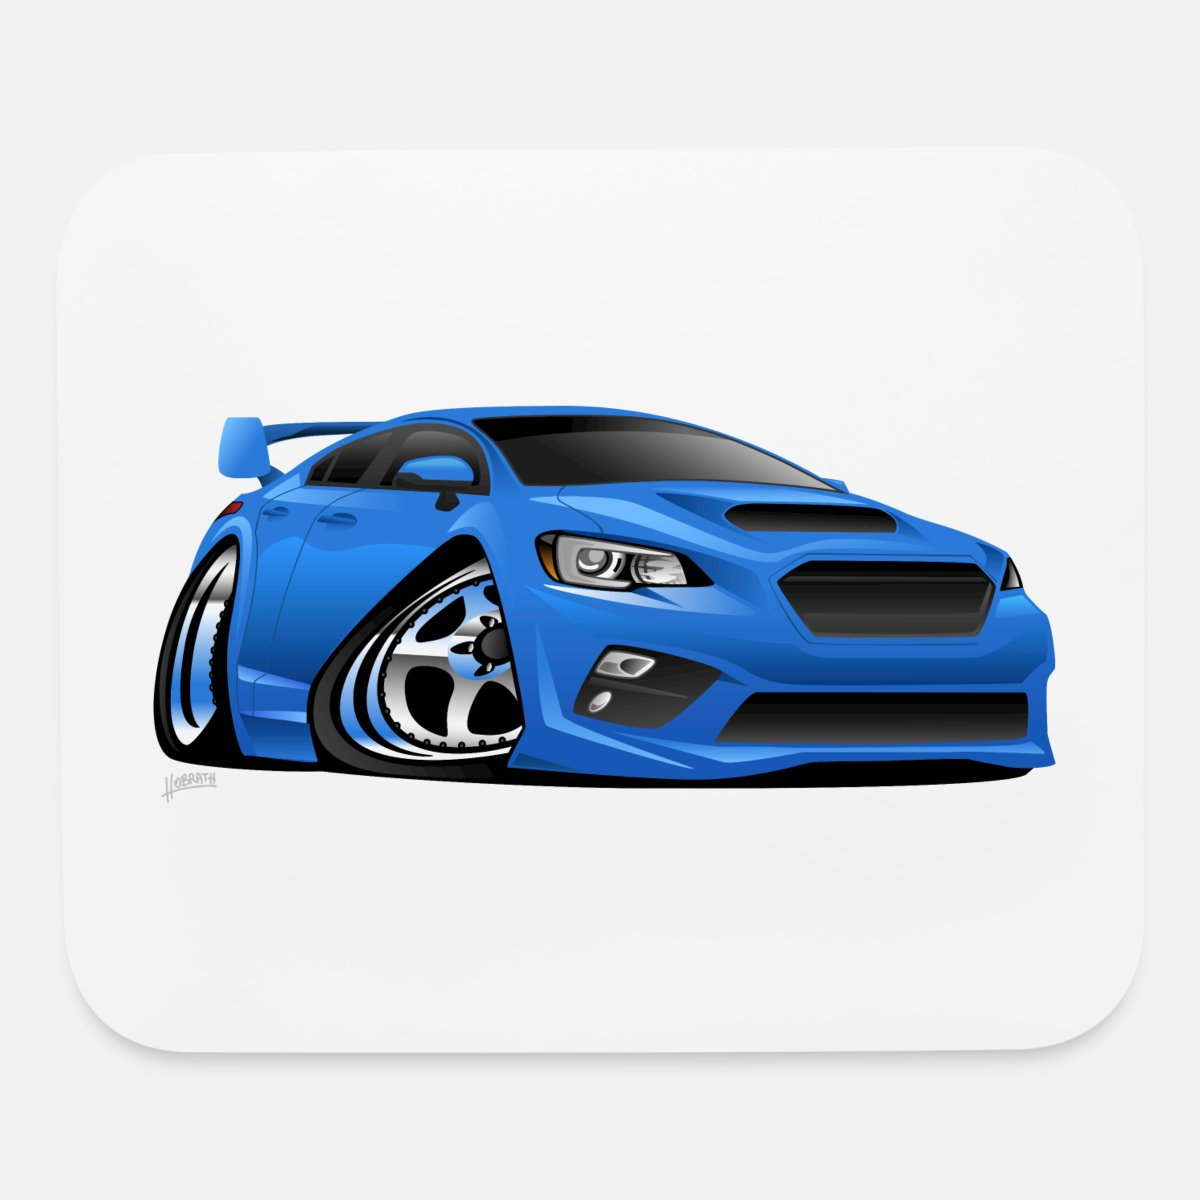 Mouse padmodern import sports car cartoon illustration